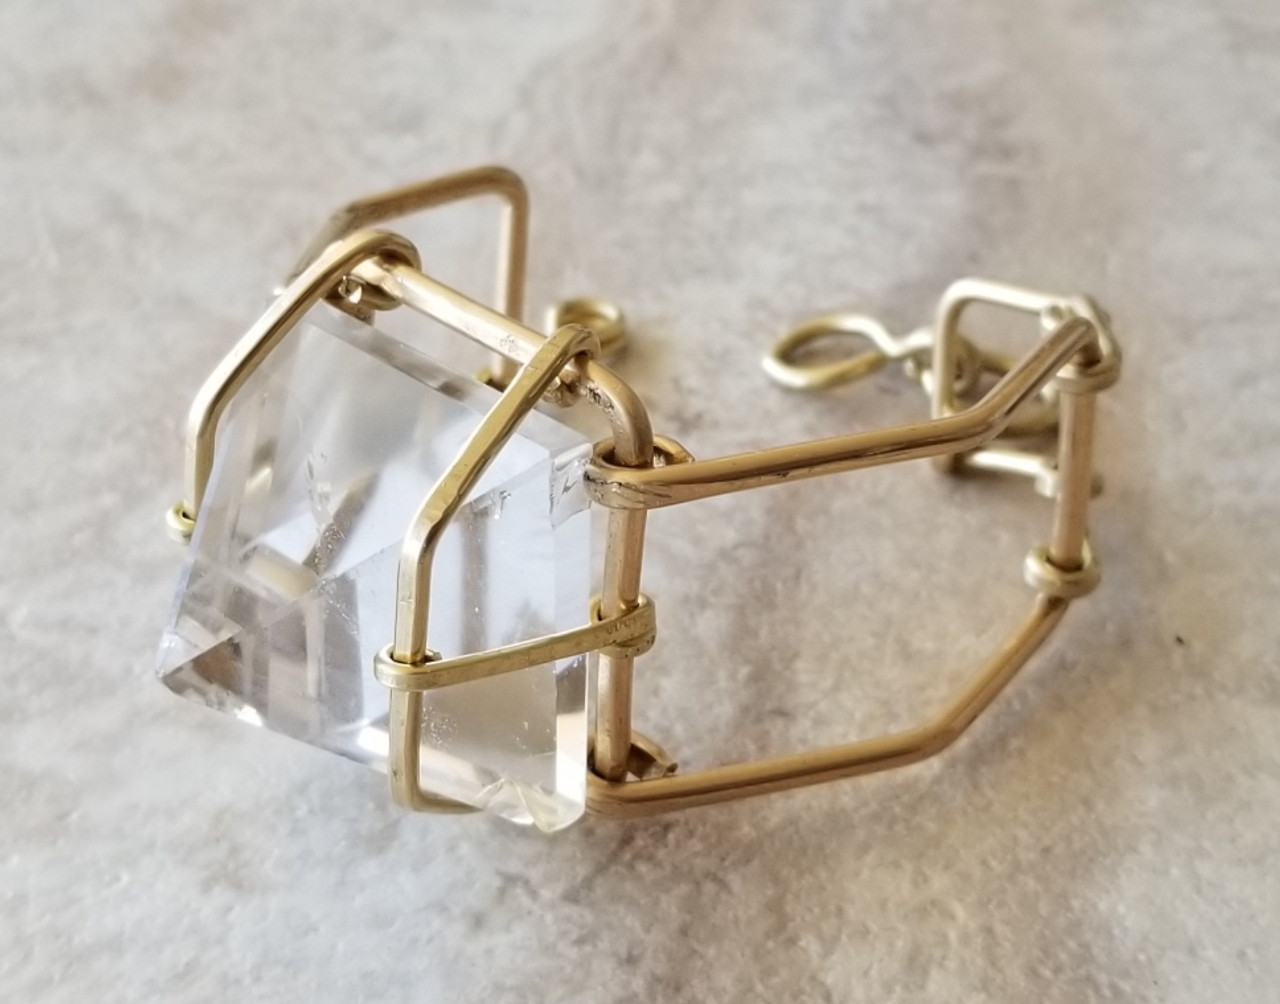 Crystal Quartz Pyramid Cuff